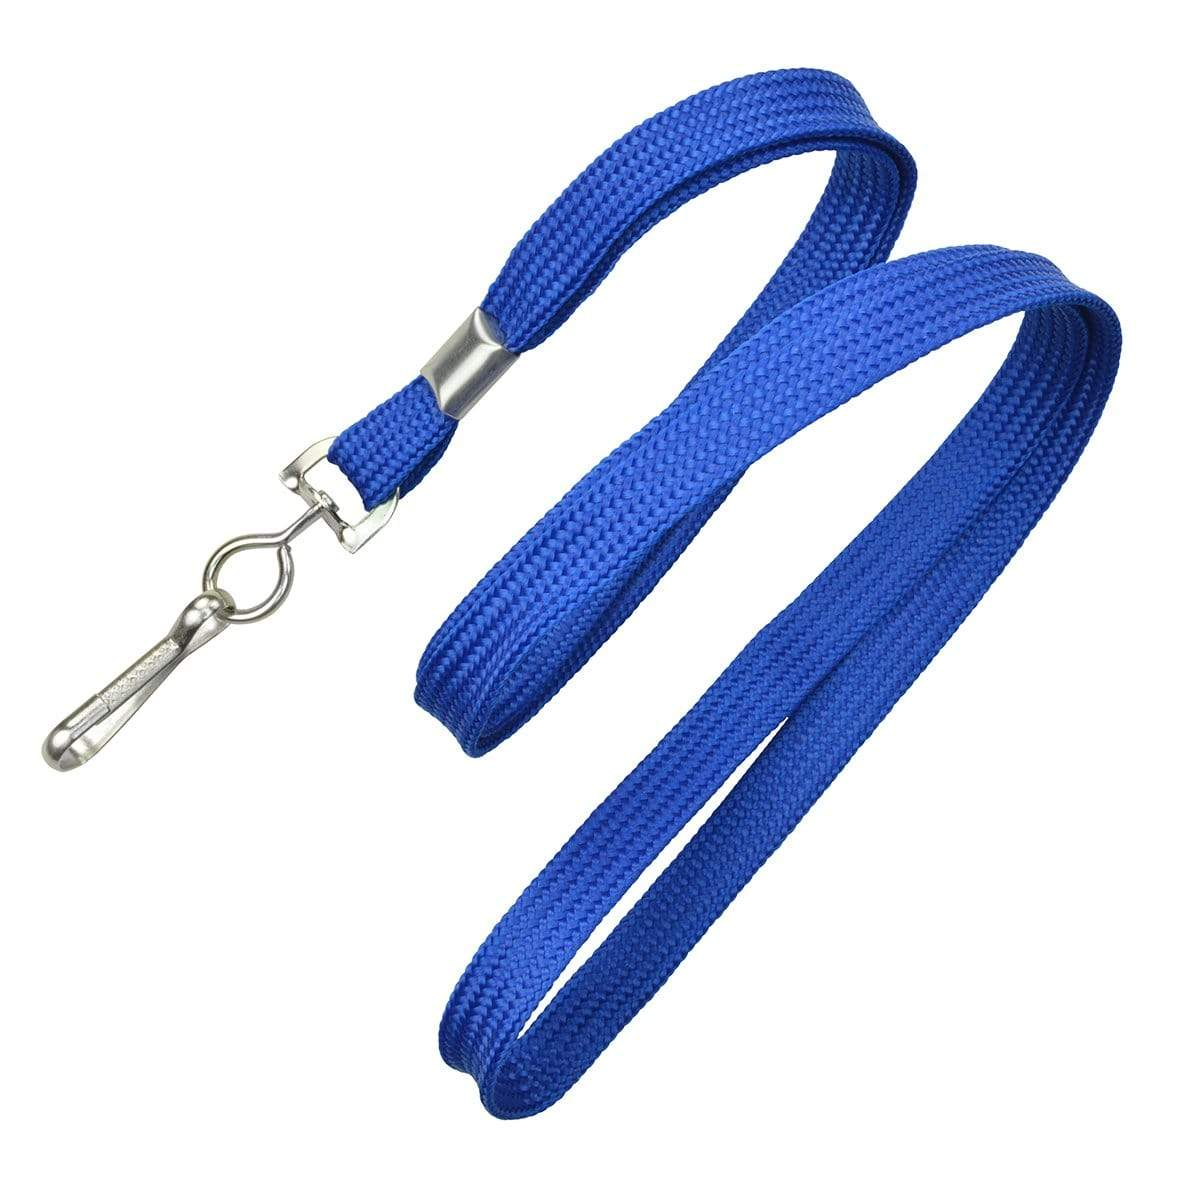 Flat Braid Woven Non-Breakaway Lanyard With a Steel Swivel Hook (P/N 2135-350X)